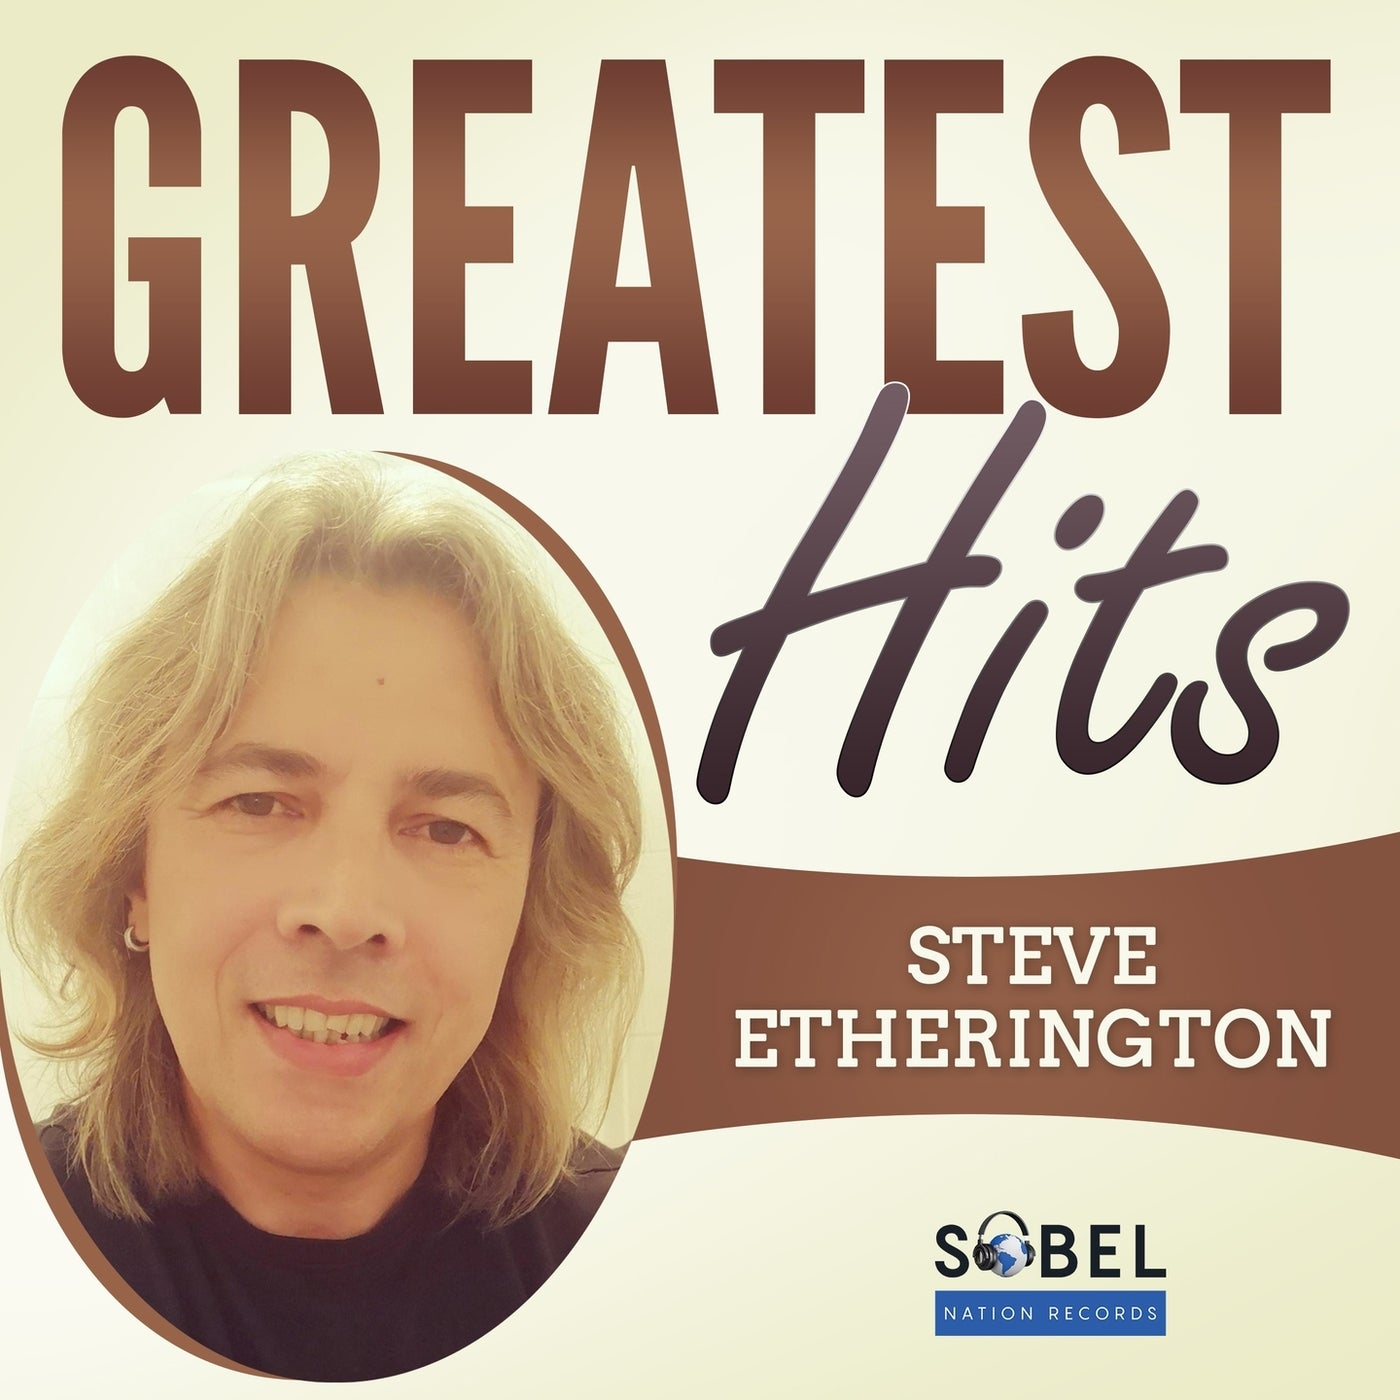 Steve Etherington Returns With His Greatest Hits